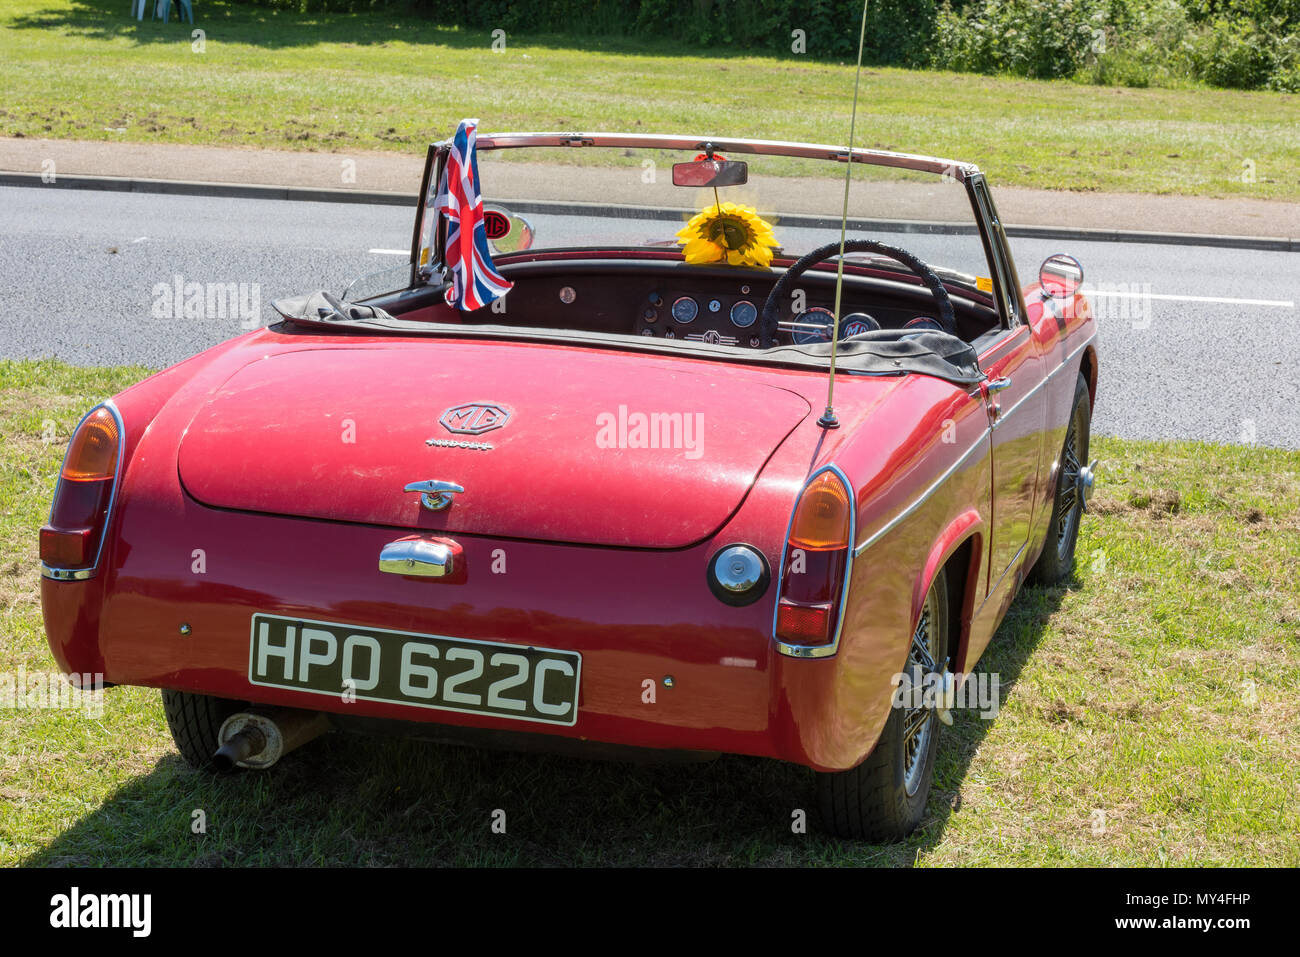 a vintage MG motor car or sports car with a sunflower on the dashboard and the roof down in the hot summer weather. MG midget vintage sports car. - Stock Image